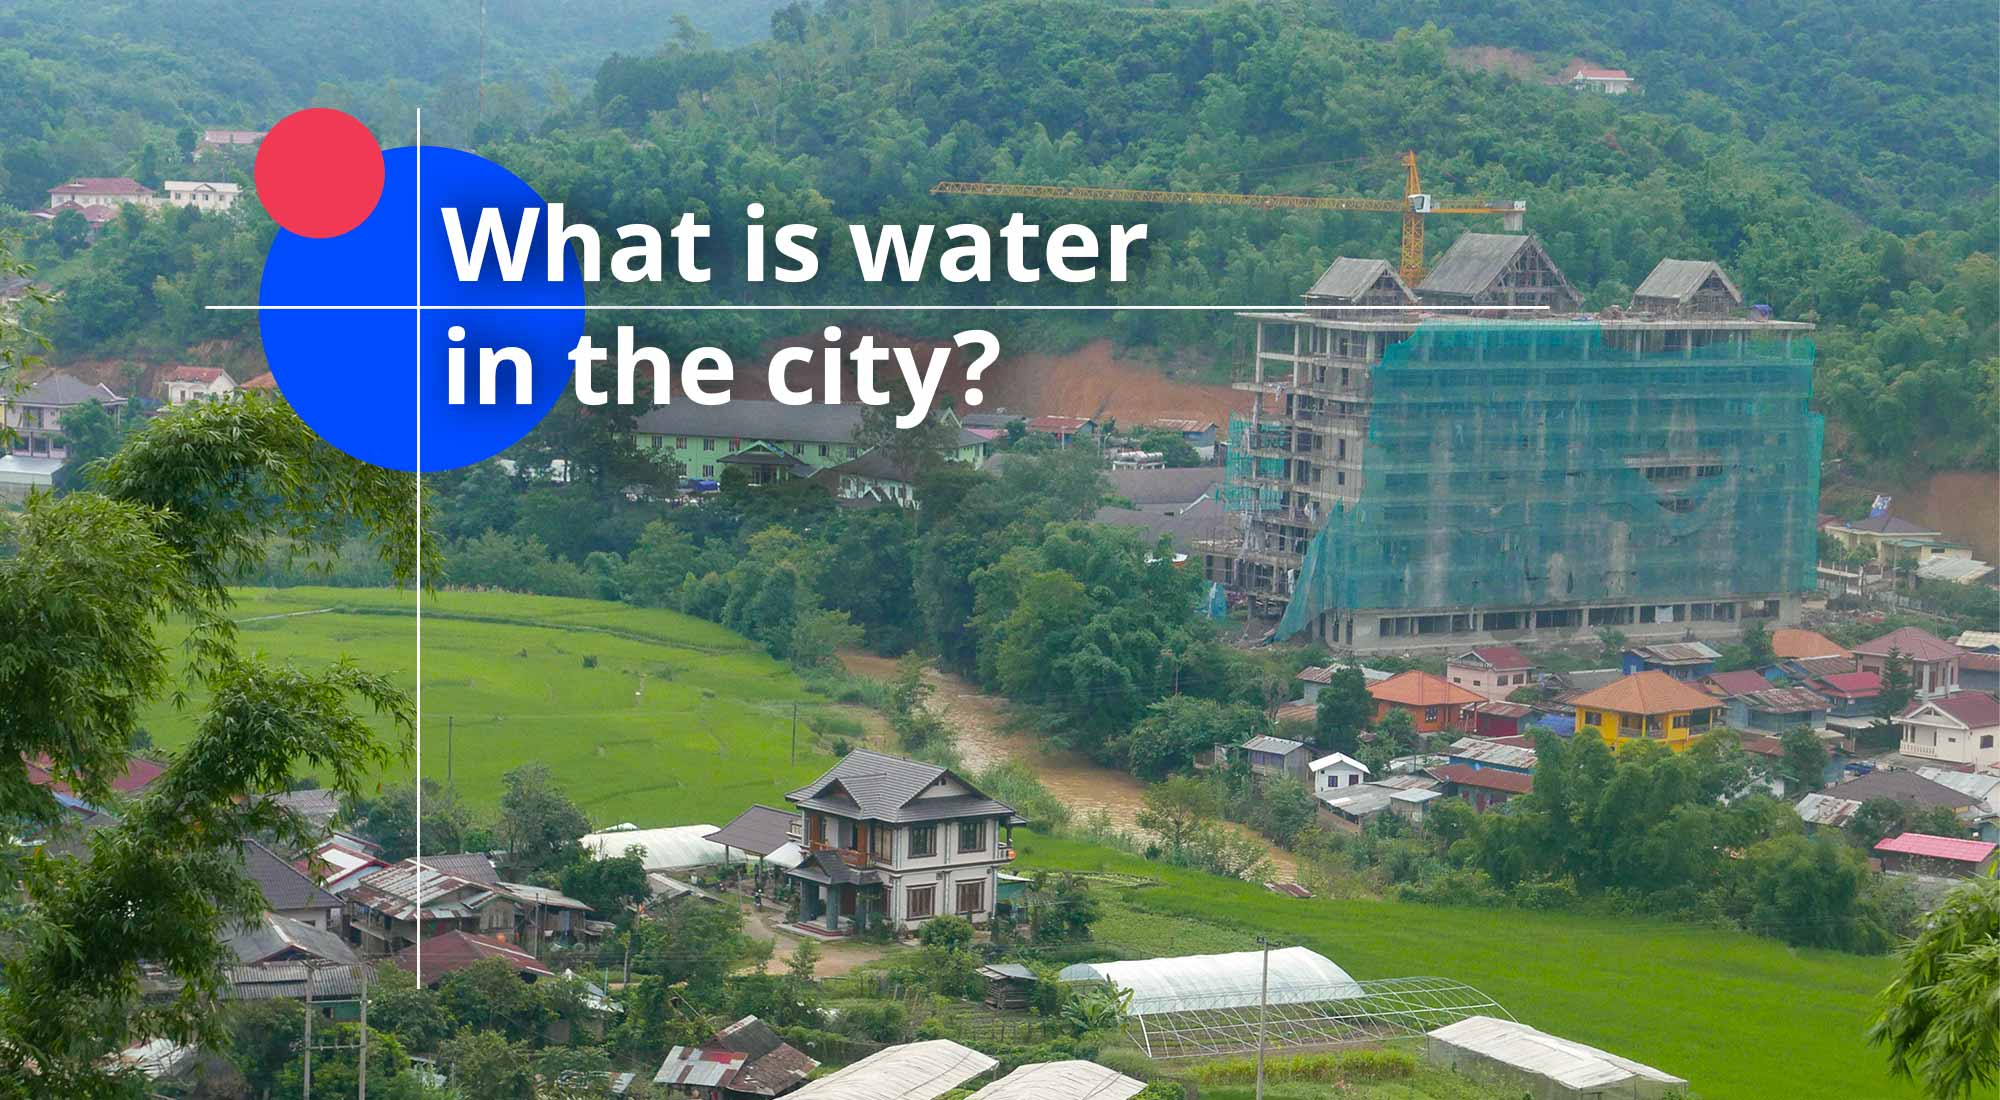 What is water in the city?